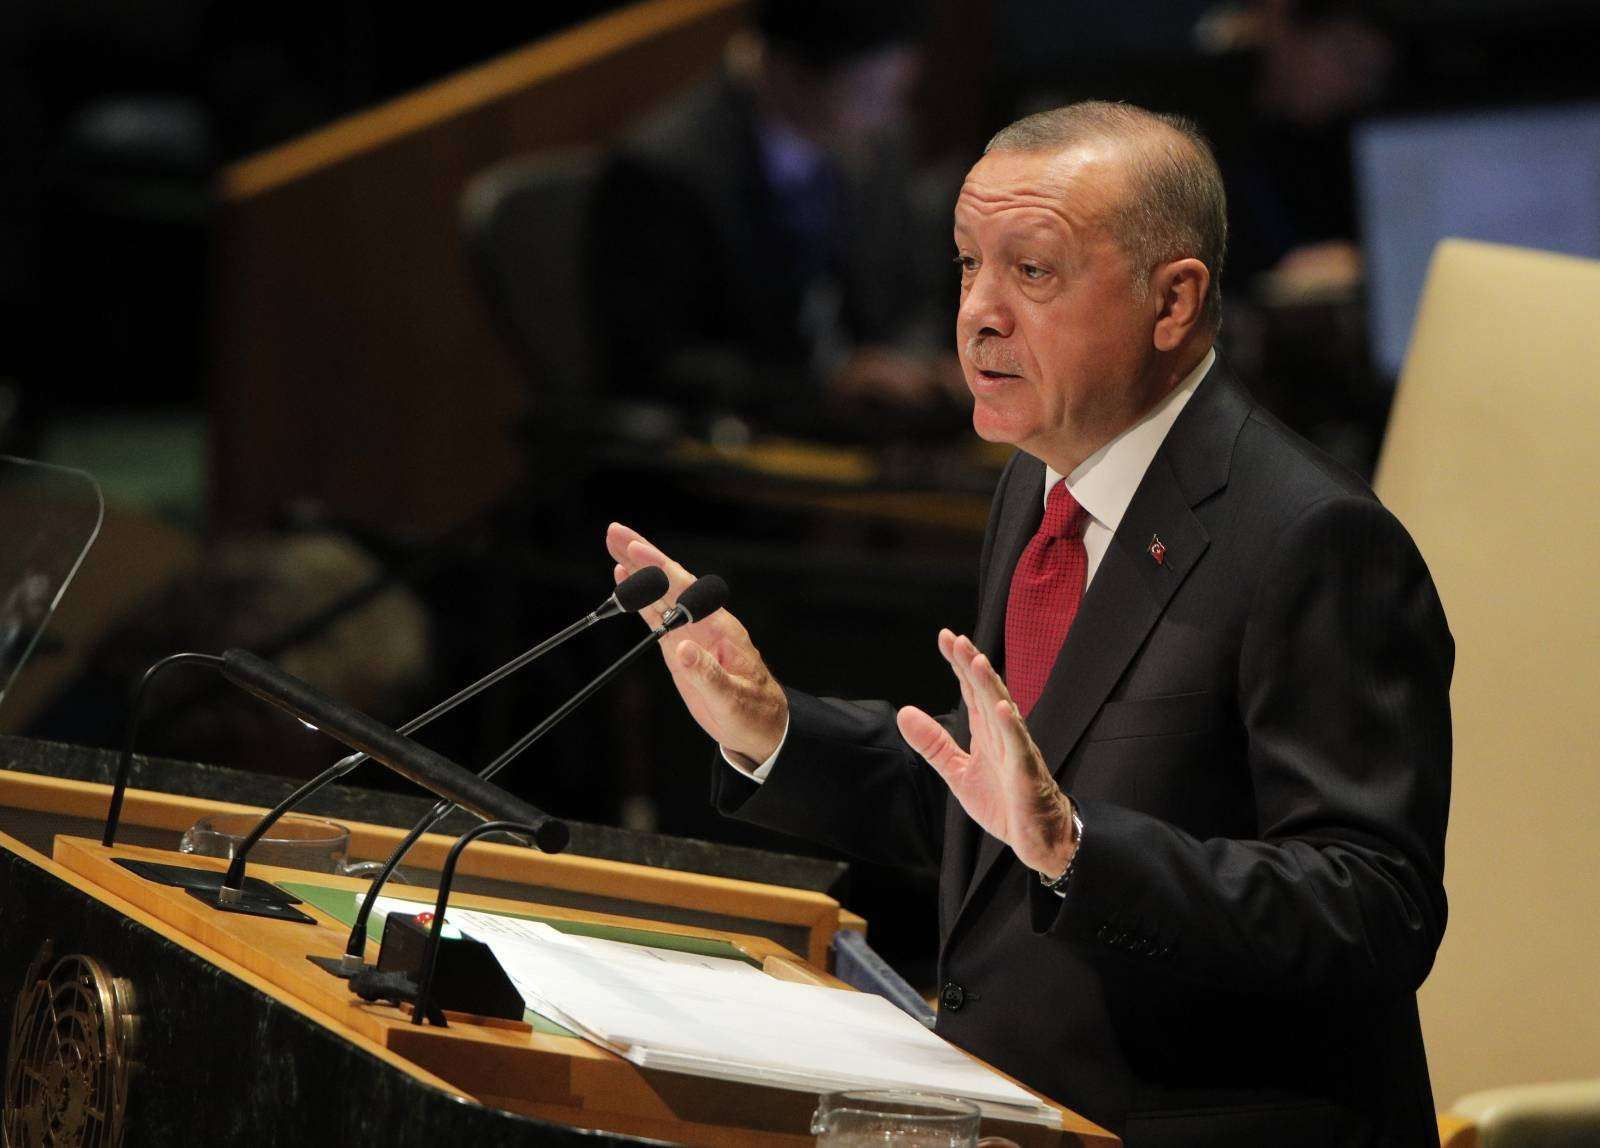 Turkey's President Recep Tayyip Erdogan addresses the 74th session of the United Nations General Assembly at U.N. headquarters in New York City, New York, U.S.